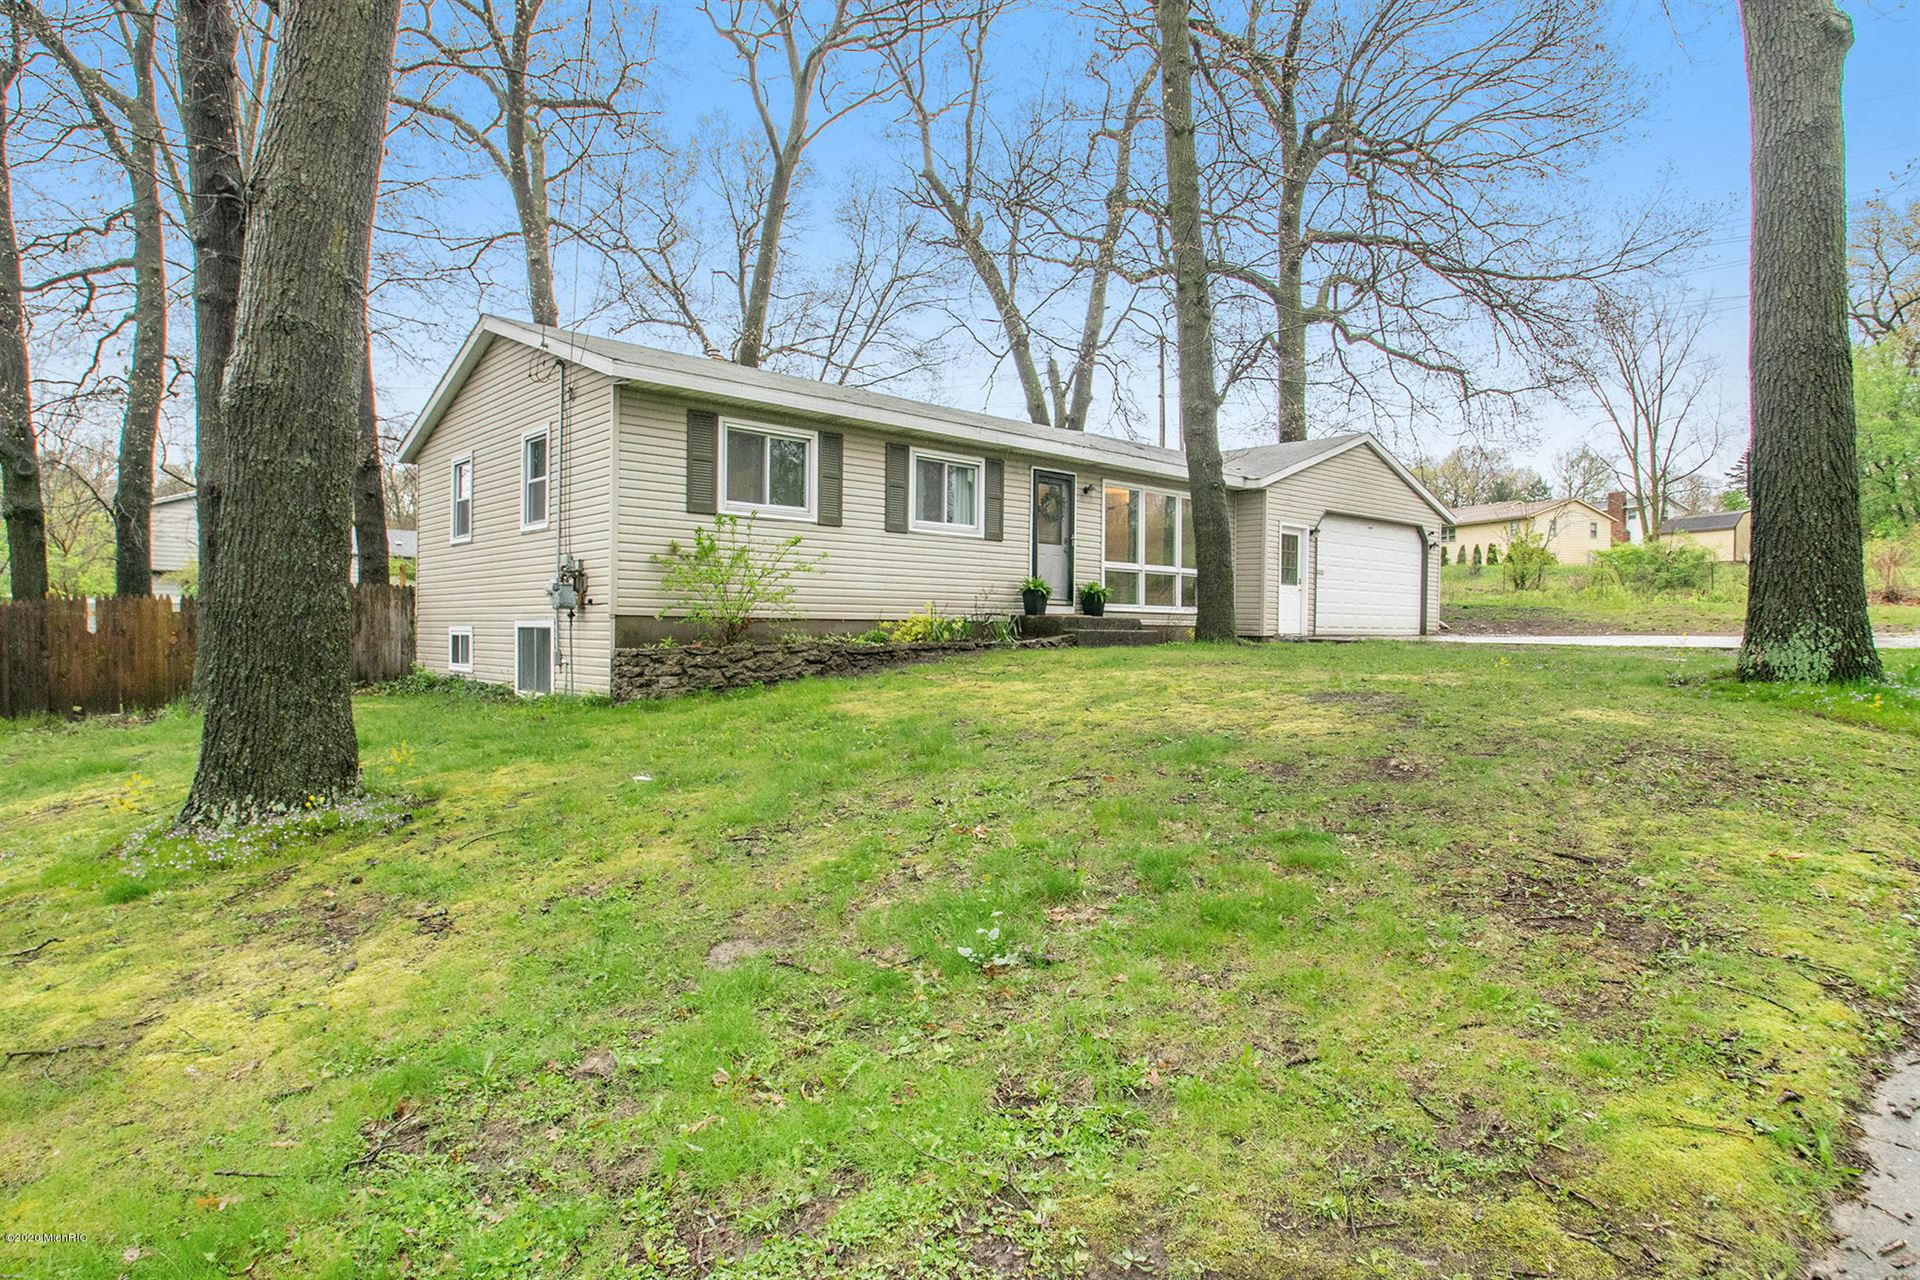 1407 Winslow Street NW, Grand Rapids, MI 49544 - MLS#: 20017441